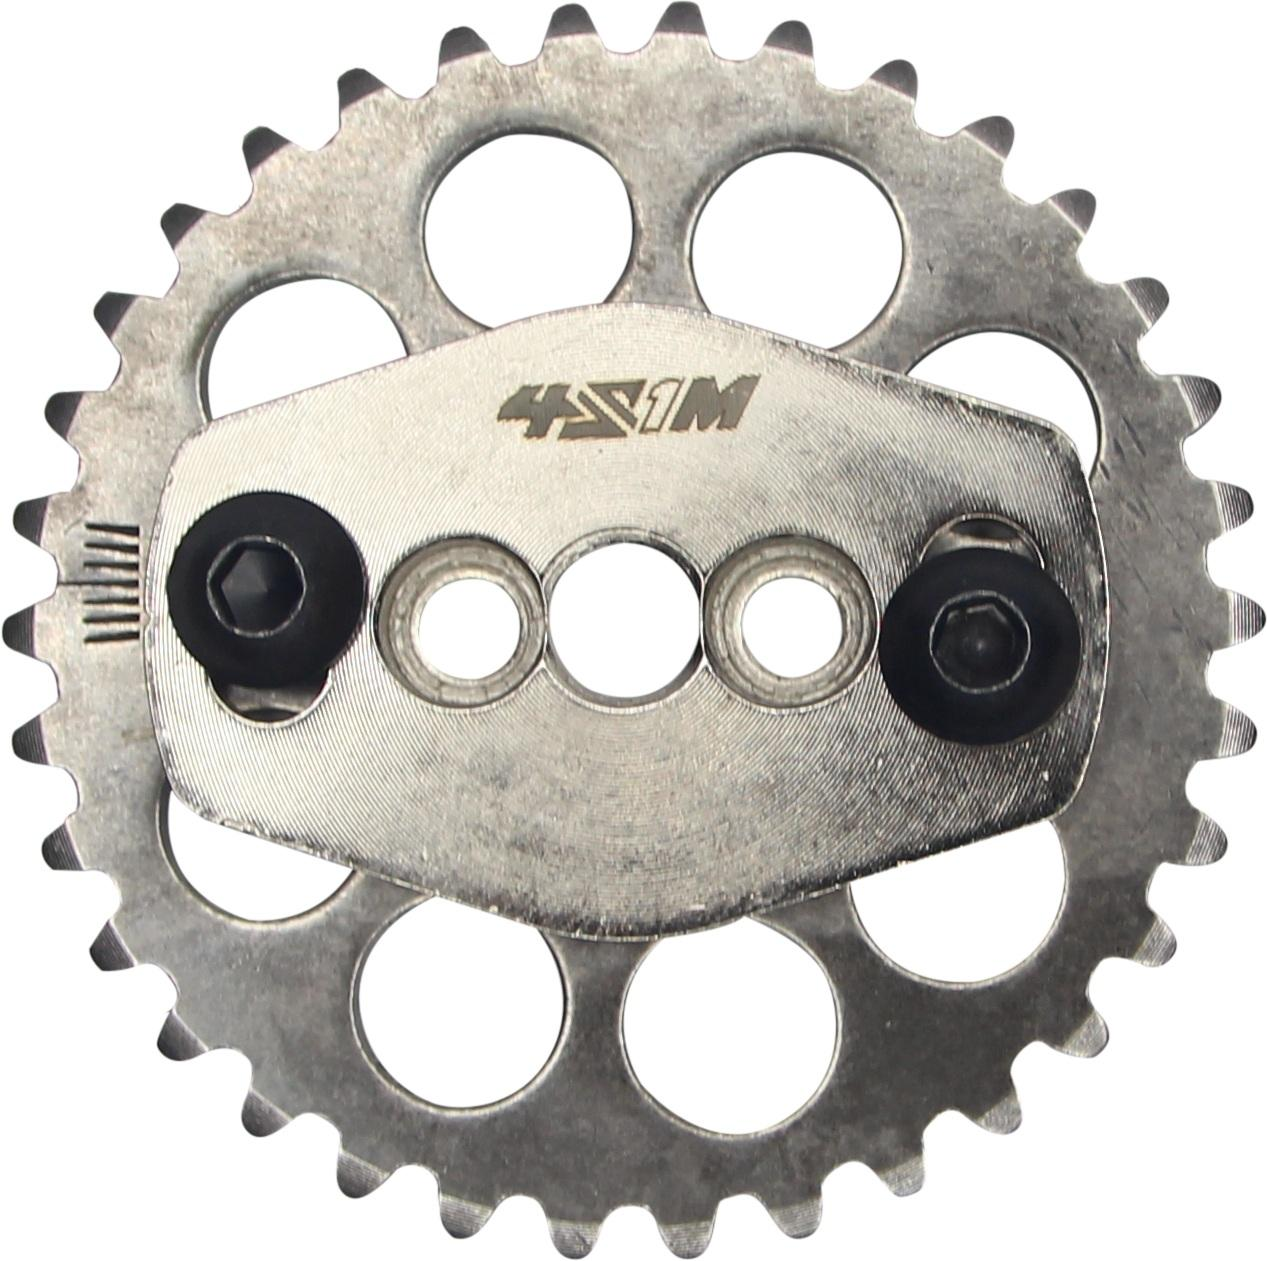 4s1m Adjustable Timing Gear (wave125) By Racing Force Marketing.